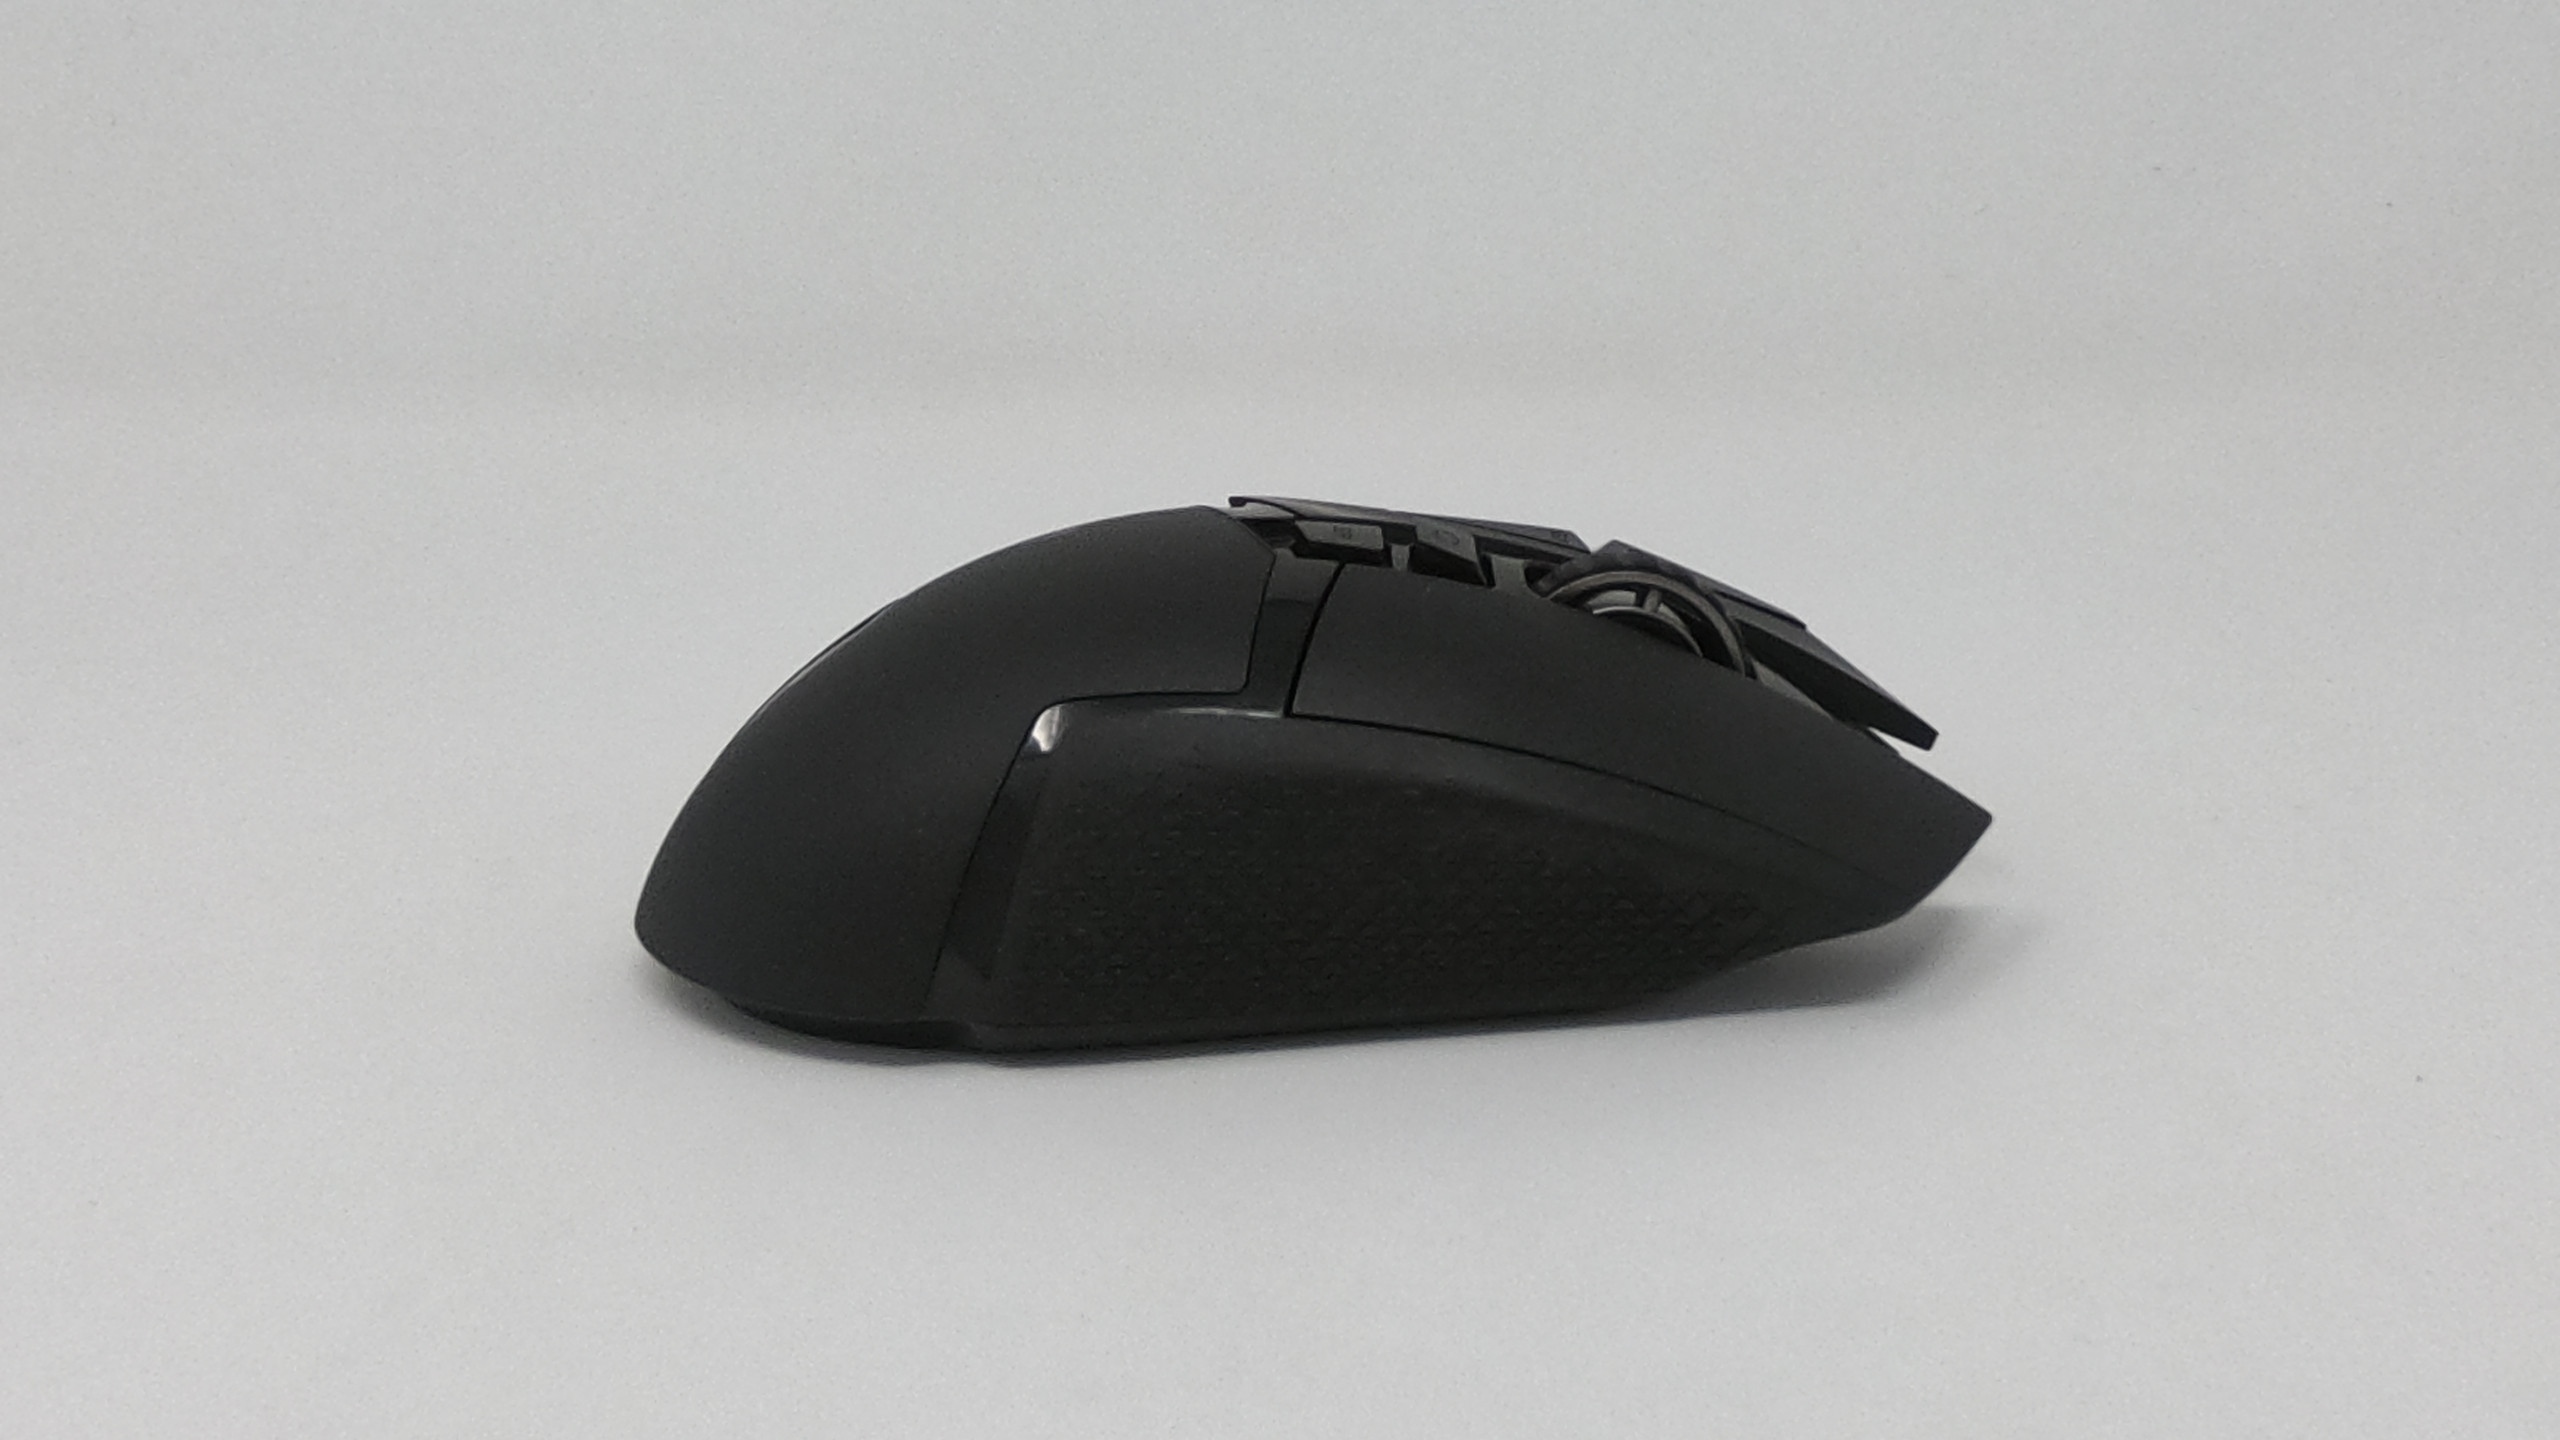 Logitech G502 Wireless Right Side